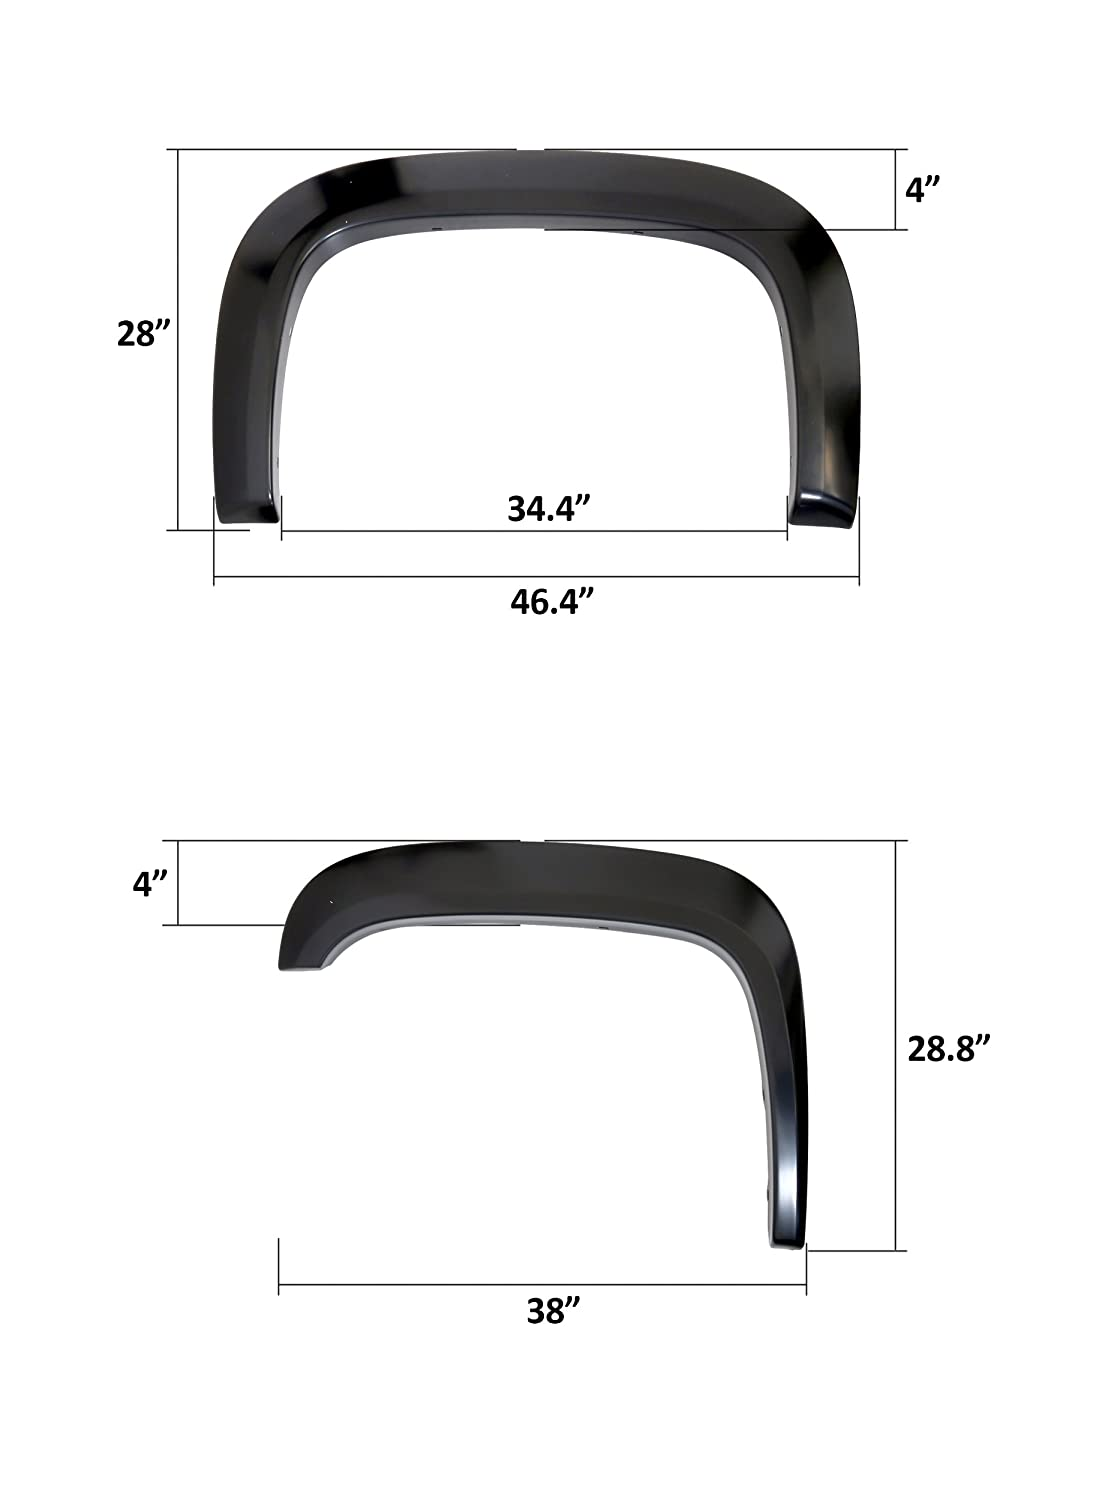 Offroader Rugged Style Fender Flares for 2007-2013 Chevy Silverado